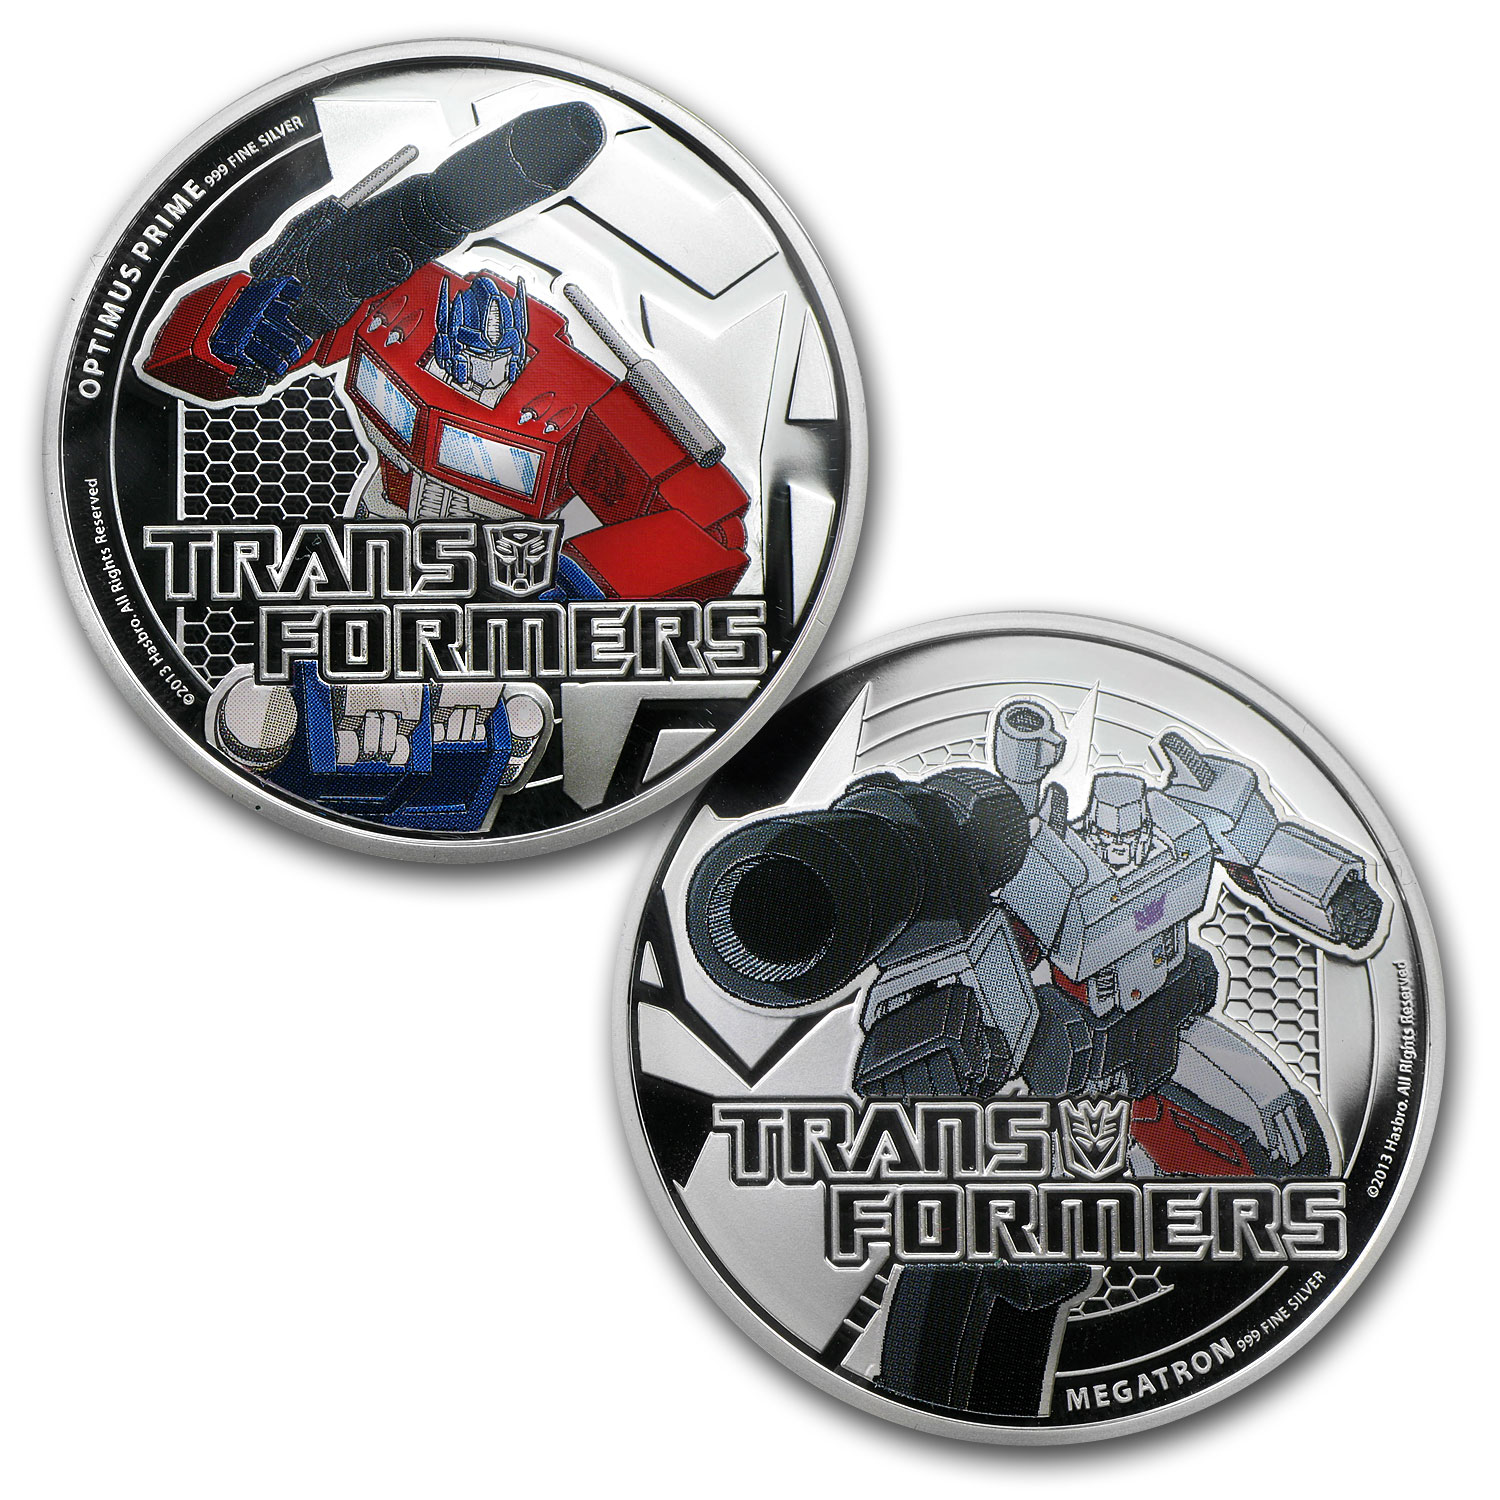 2013 2-Coin 1 oz Silver $2 Niue Transformers Proof Set